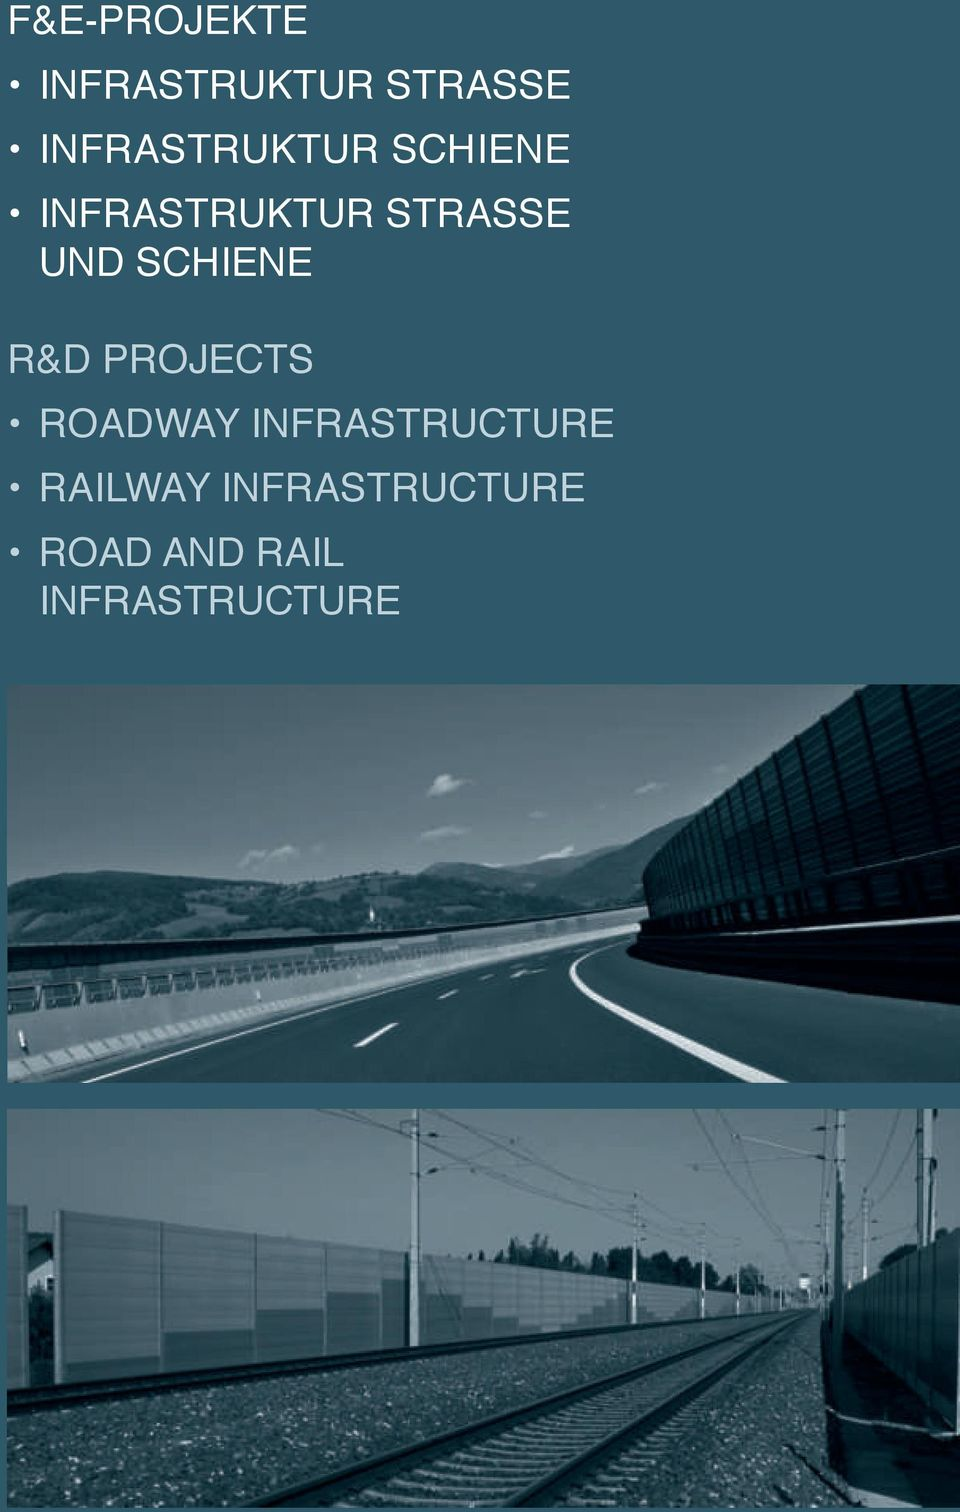 UND SChIENE R&D PROJECTS ROADWAY